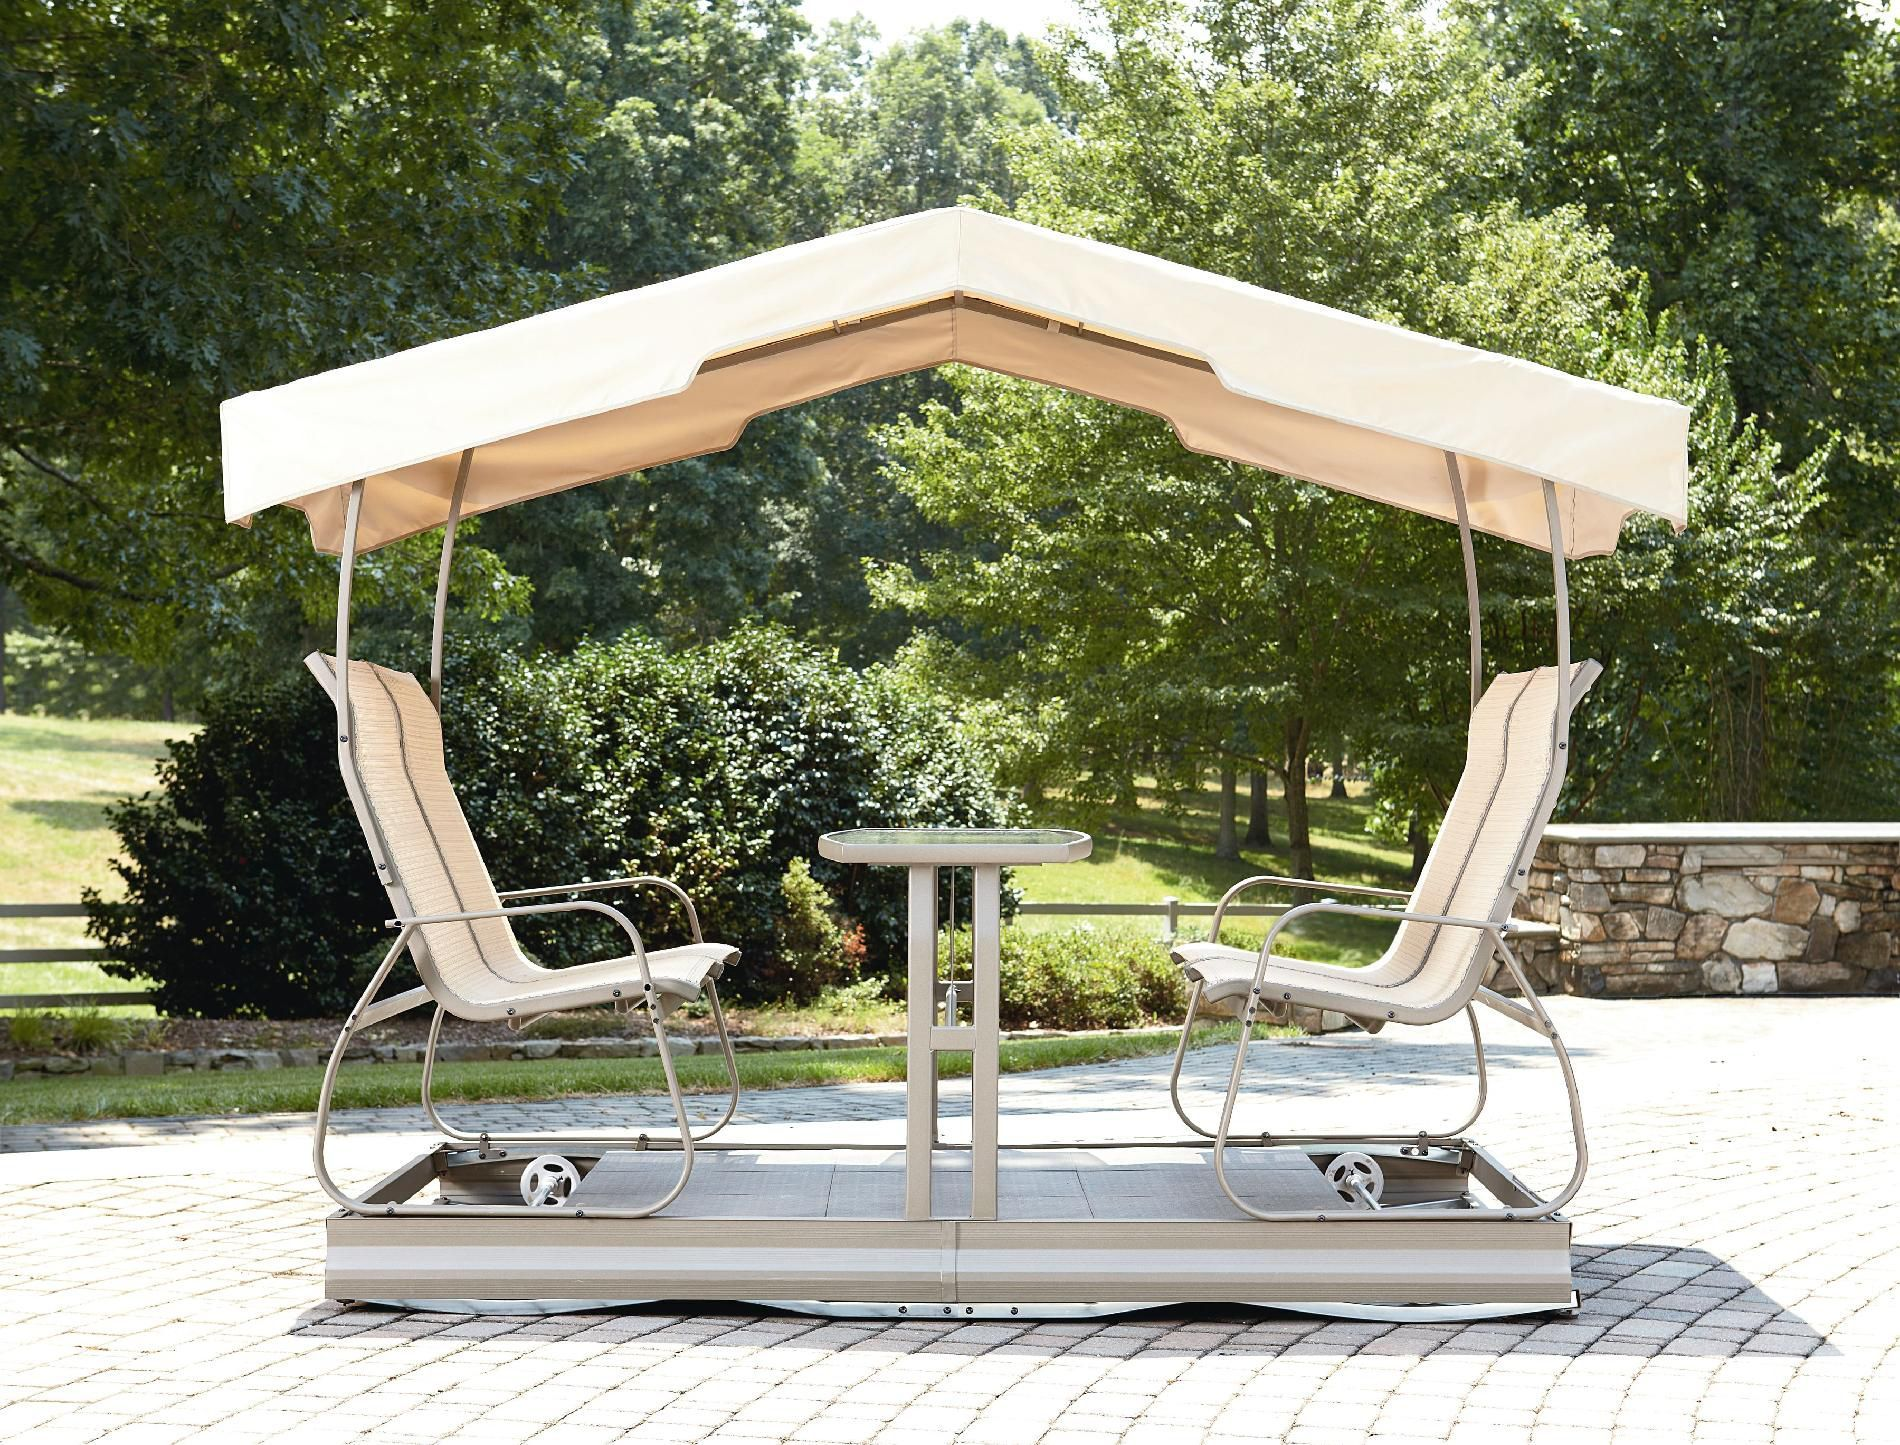 Garden Furniture 4 Seater garden glider plans | grandview 4 seat glider the grandview 4 seat